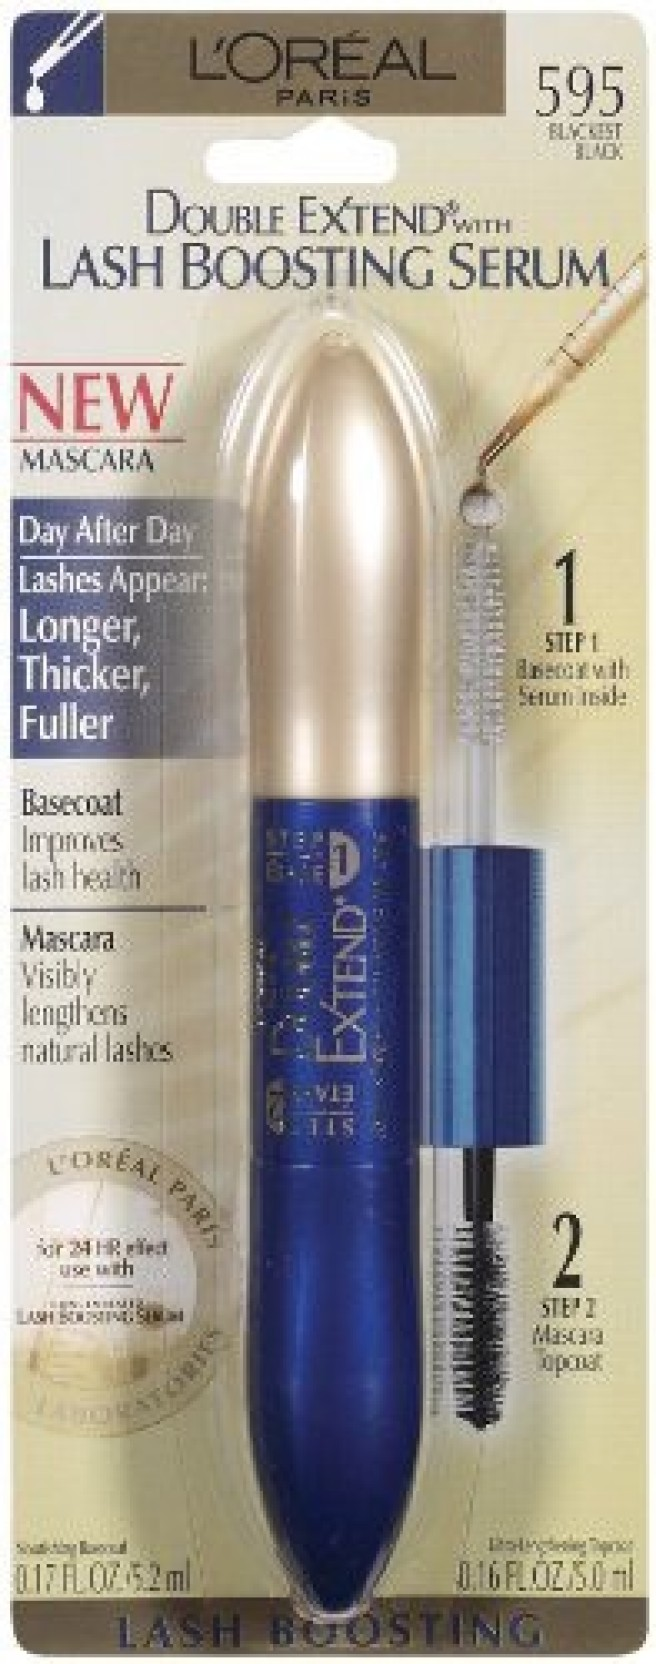 bf68be67731 L'Oreal Paris Double Extend with Lash Boosting Serum 5 ml - Price in ...